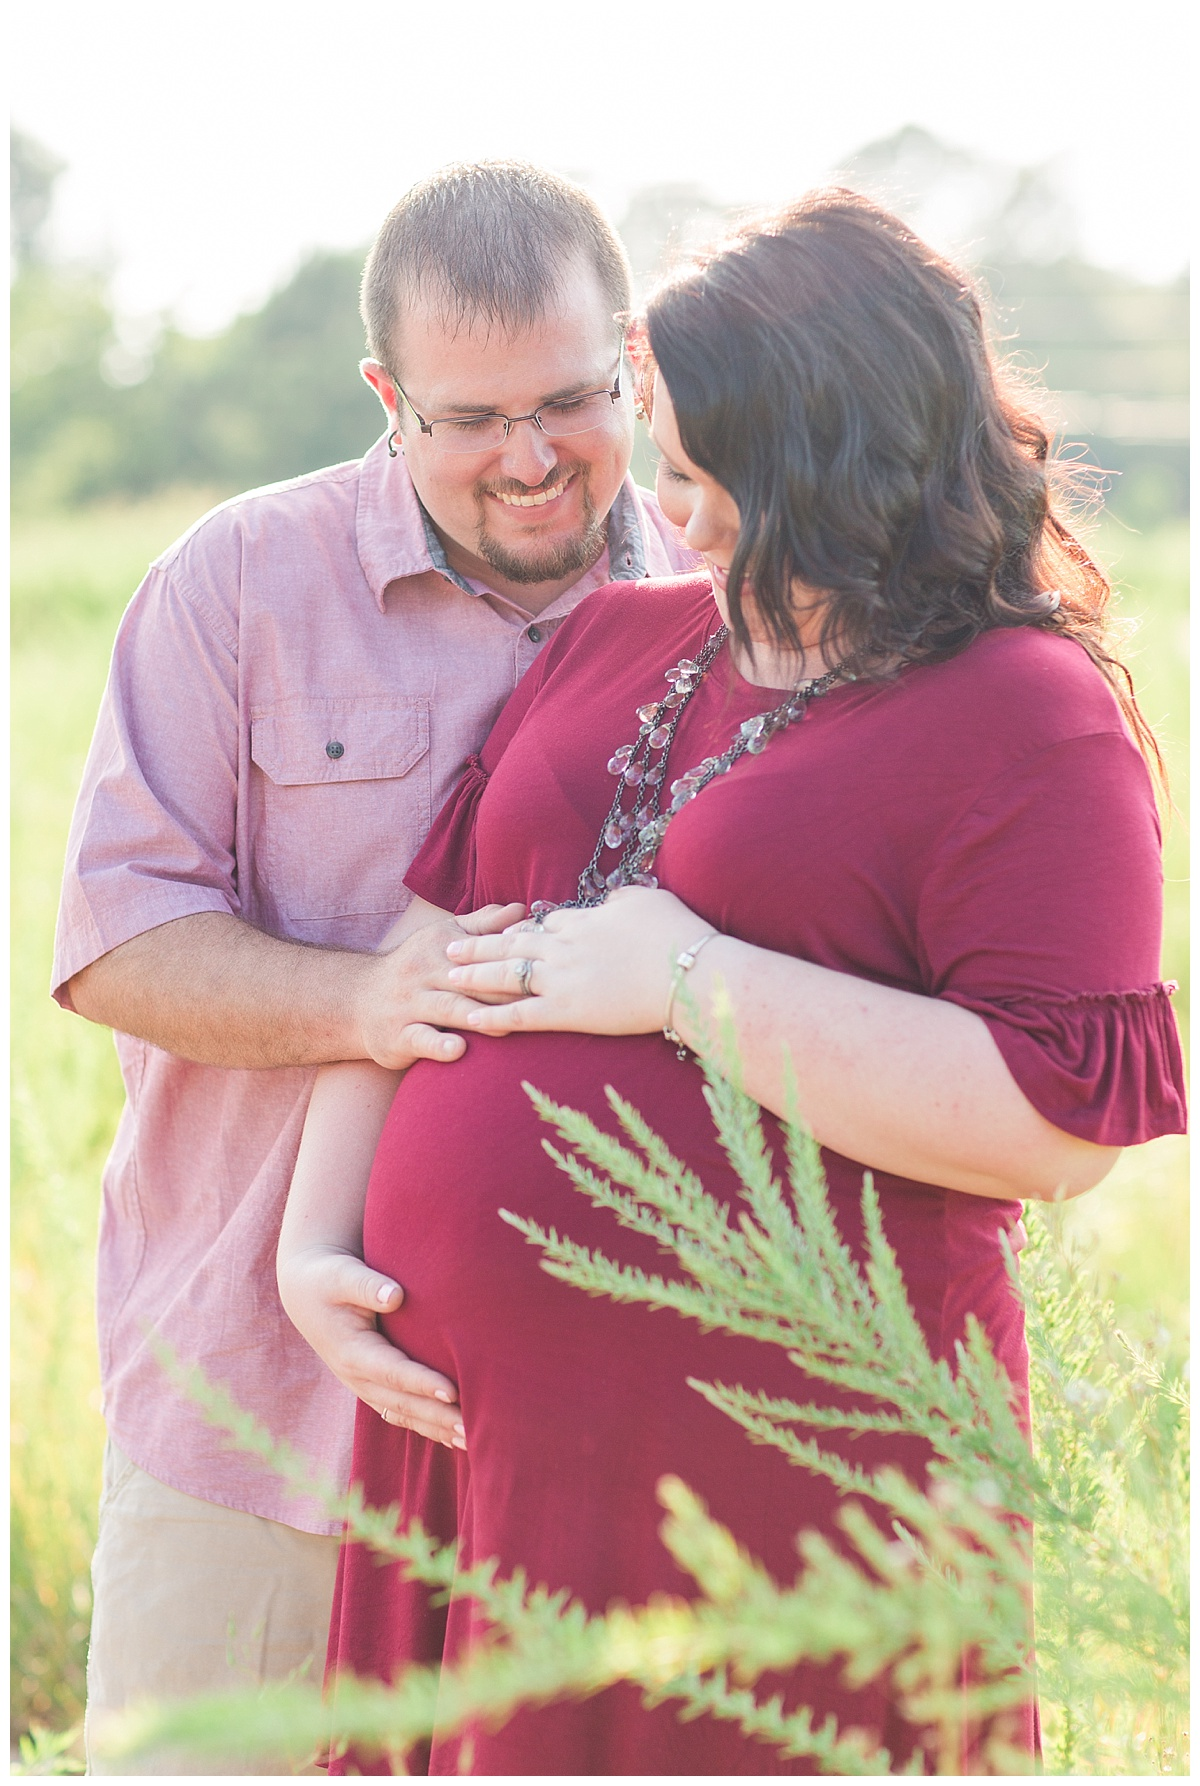 monroe_ga_maternity_photography_0019.jpg